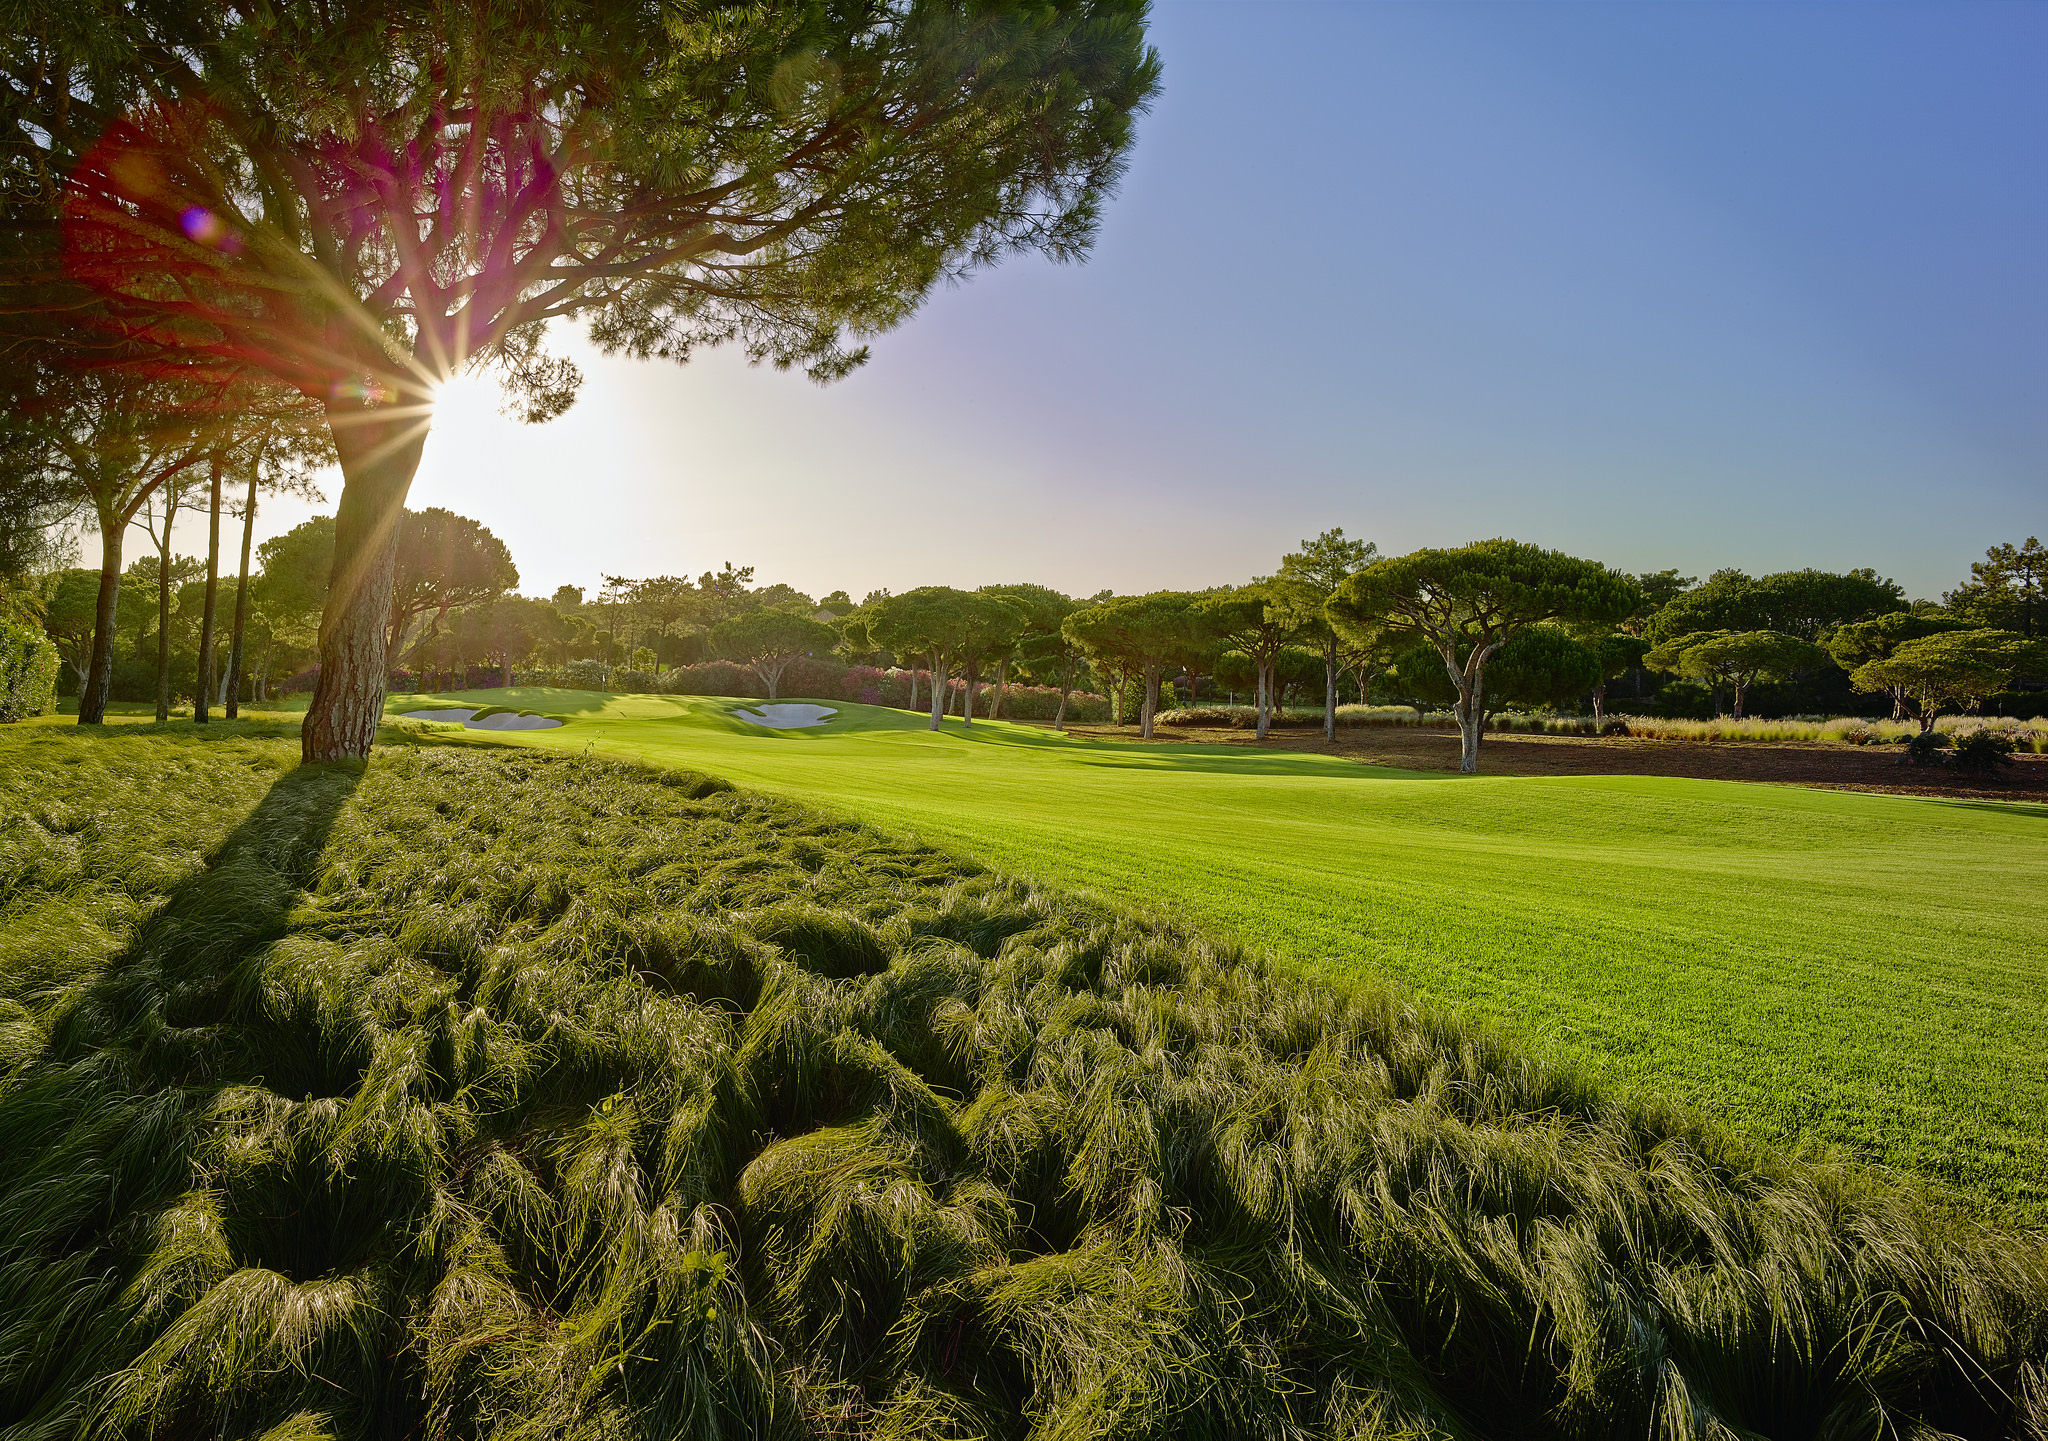 The club has spent €9.6m on improving the course